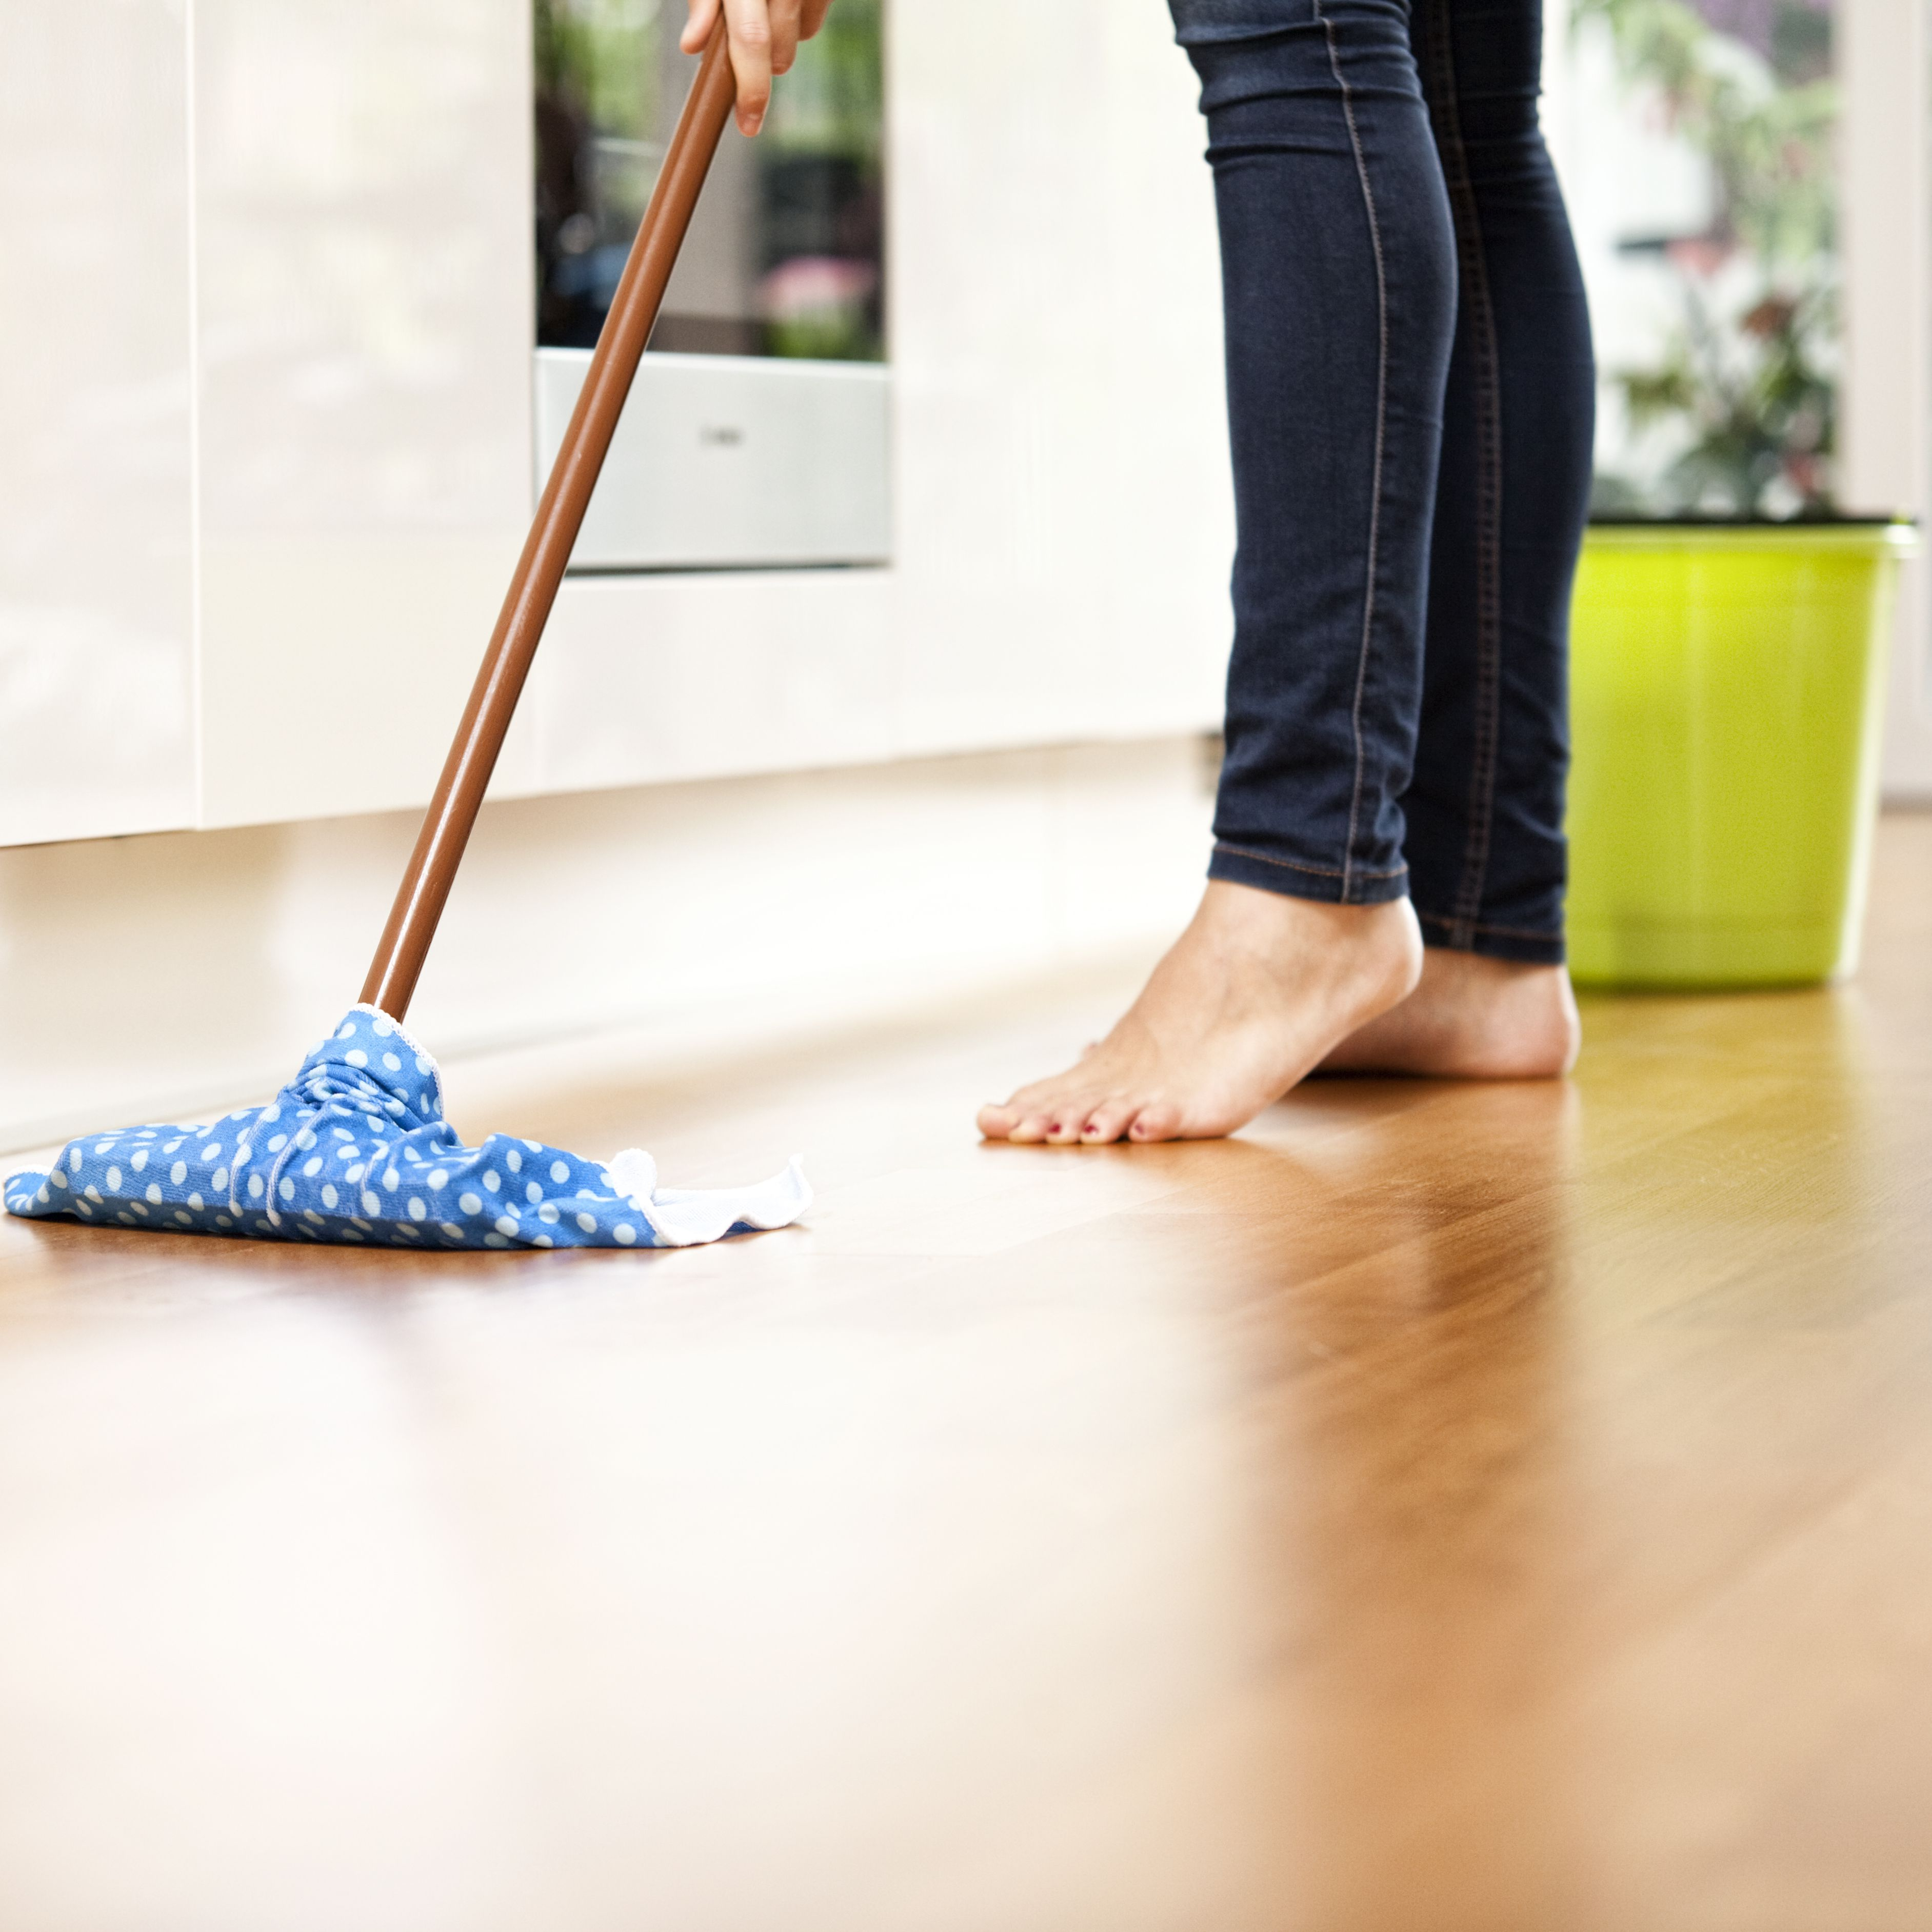 What Is The Best And Safest Way Of Cleaning Your